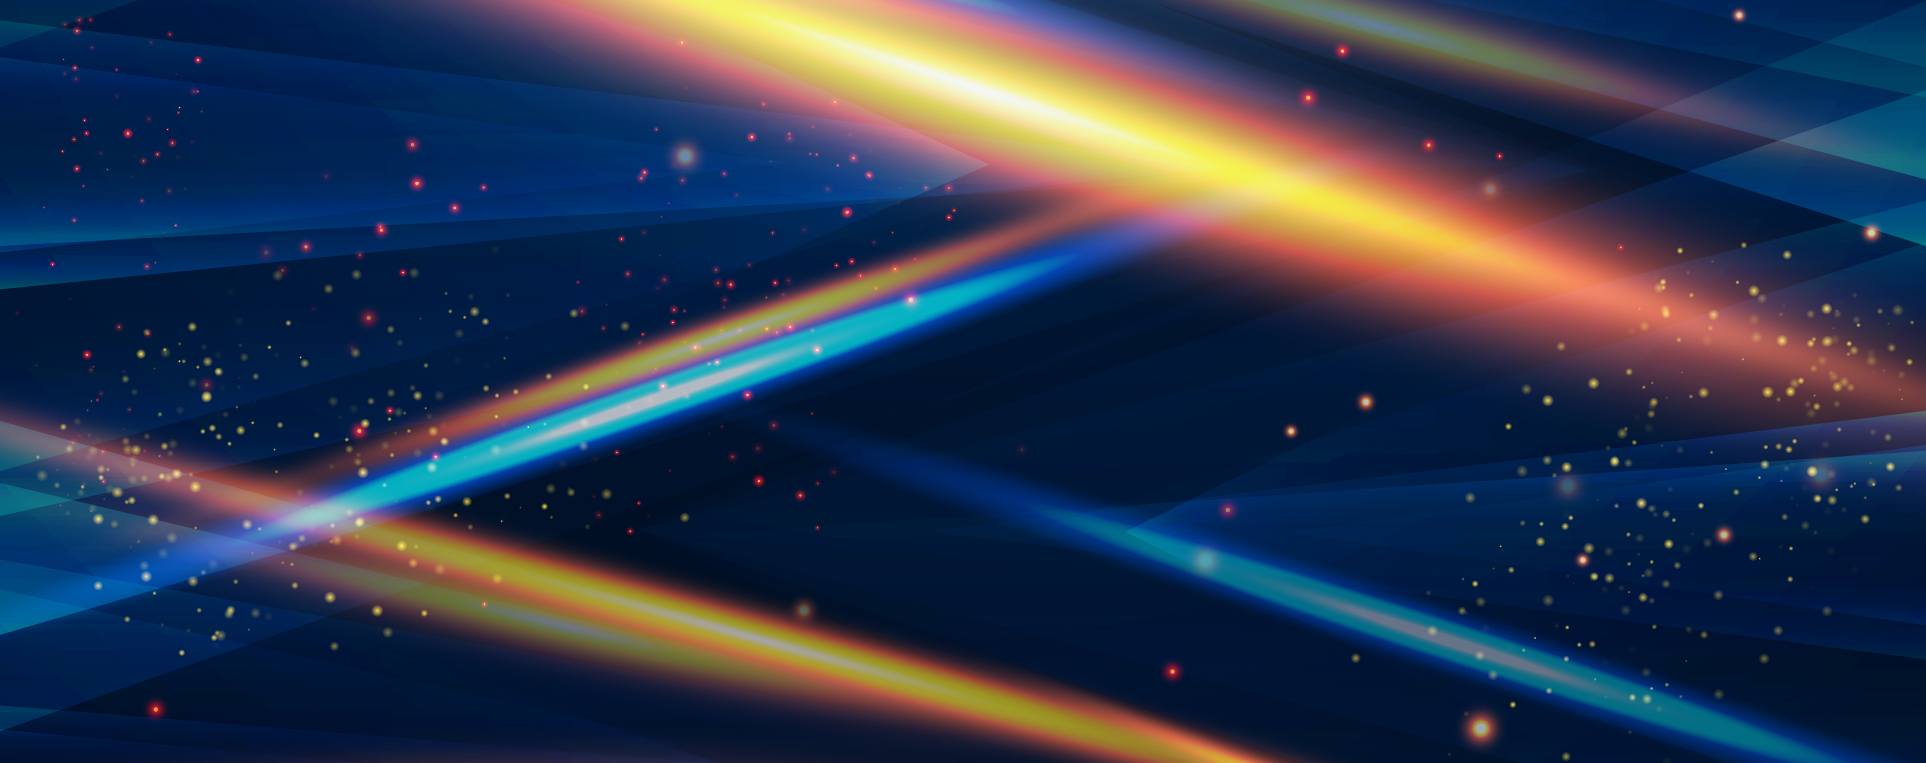 neon beam background  neon  beam  shock background image for free download